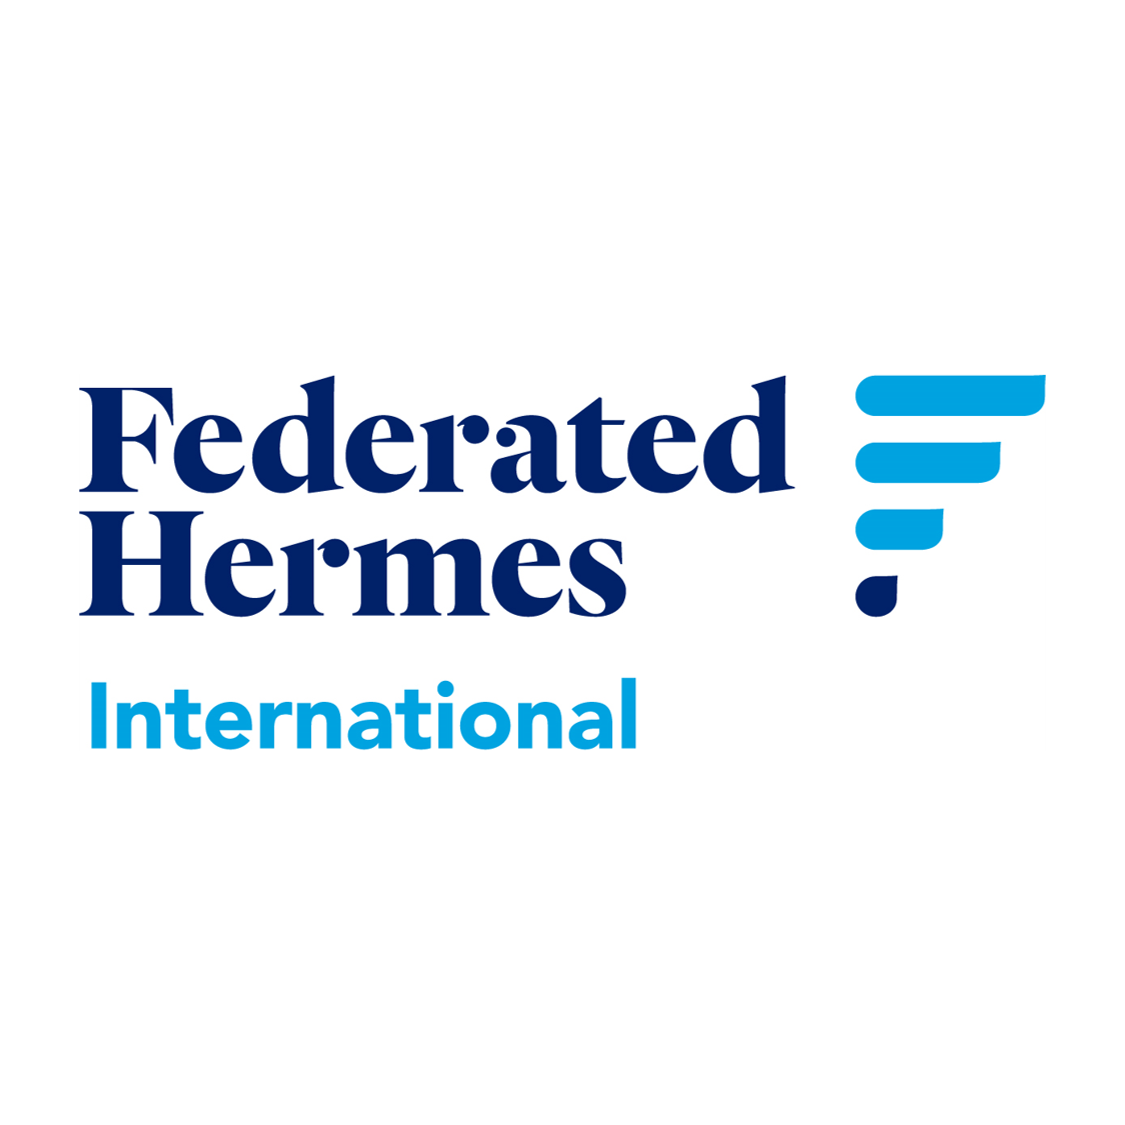 Federated Hermes International